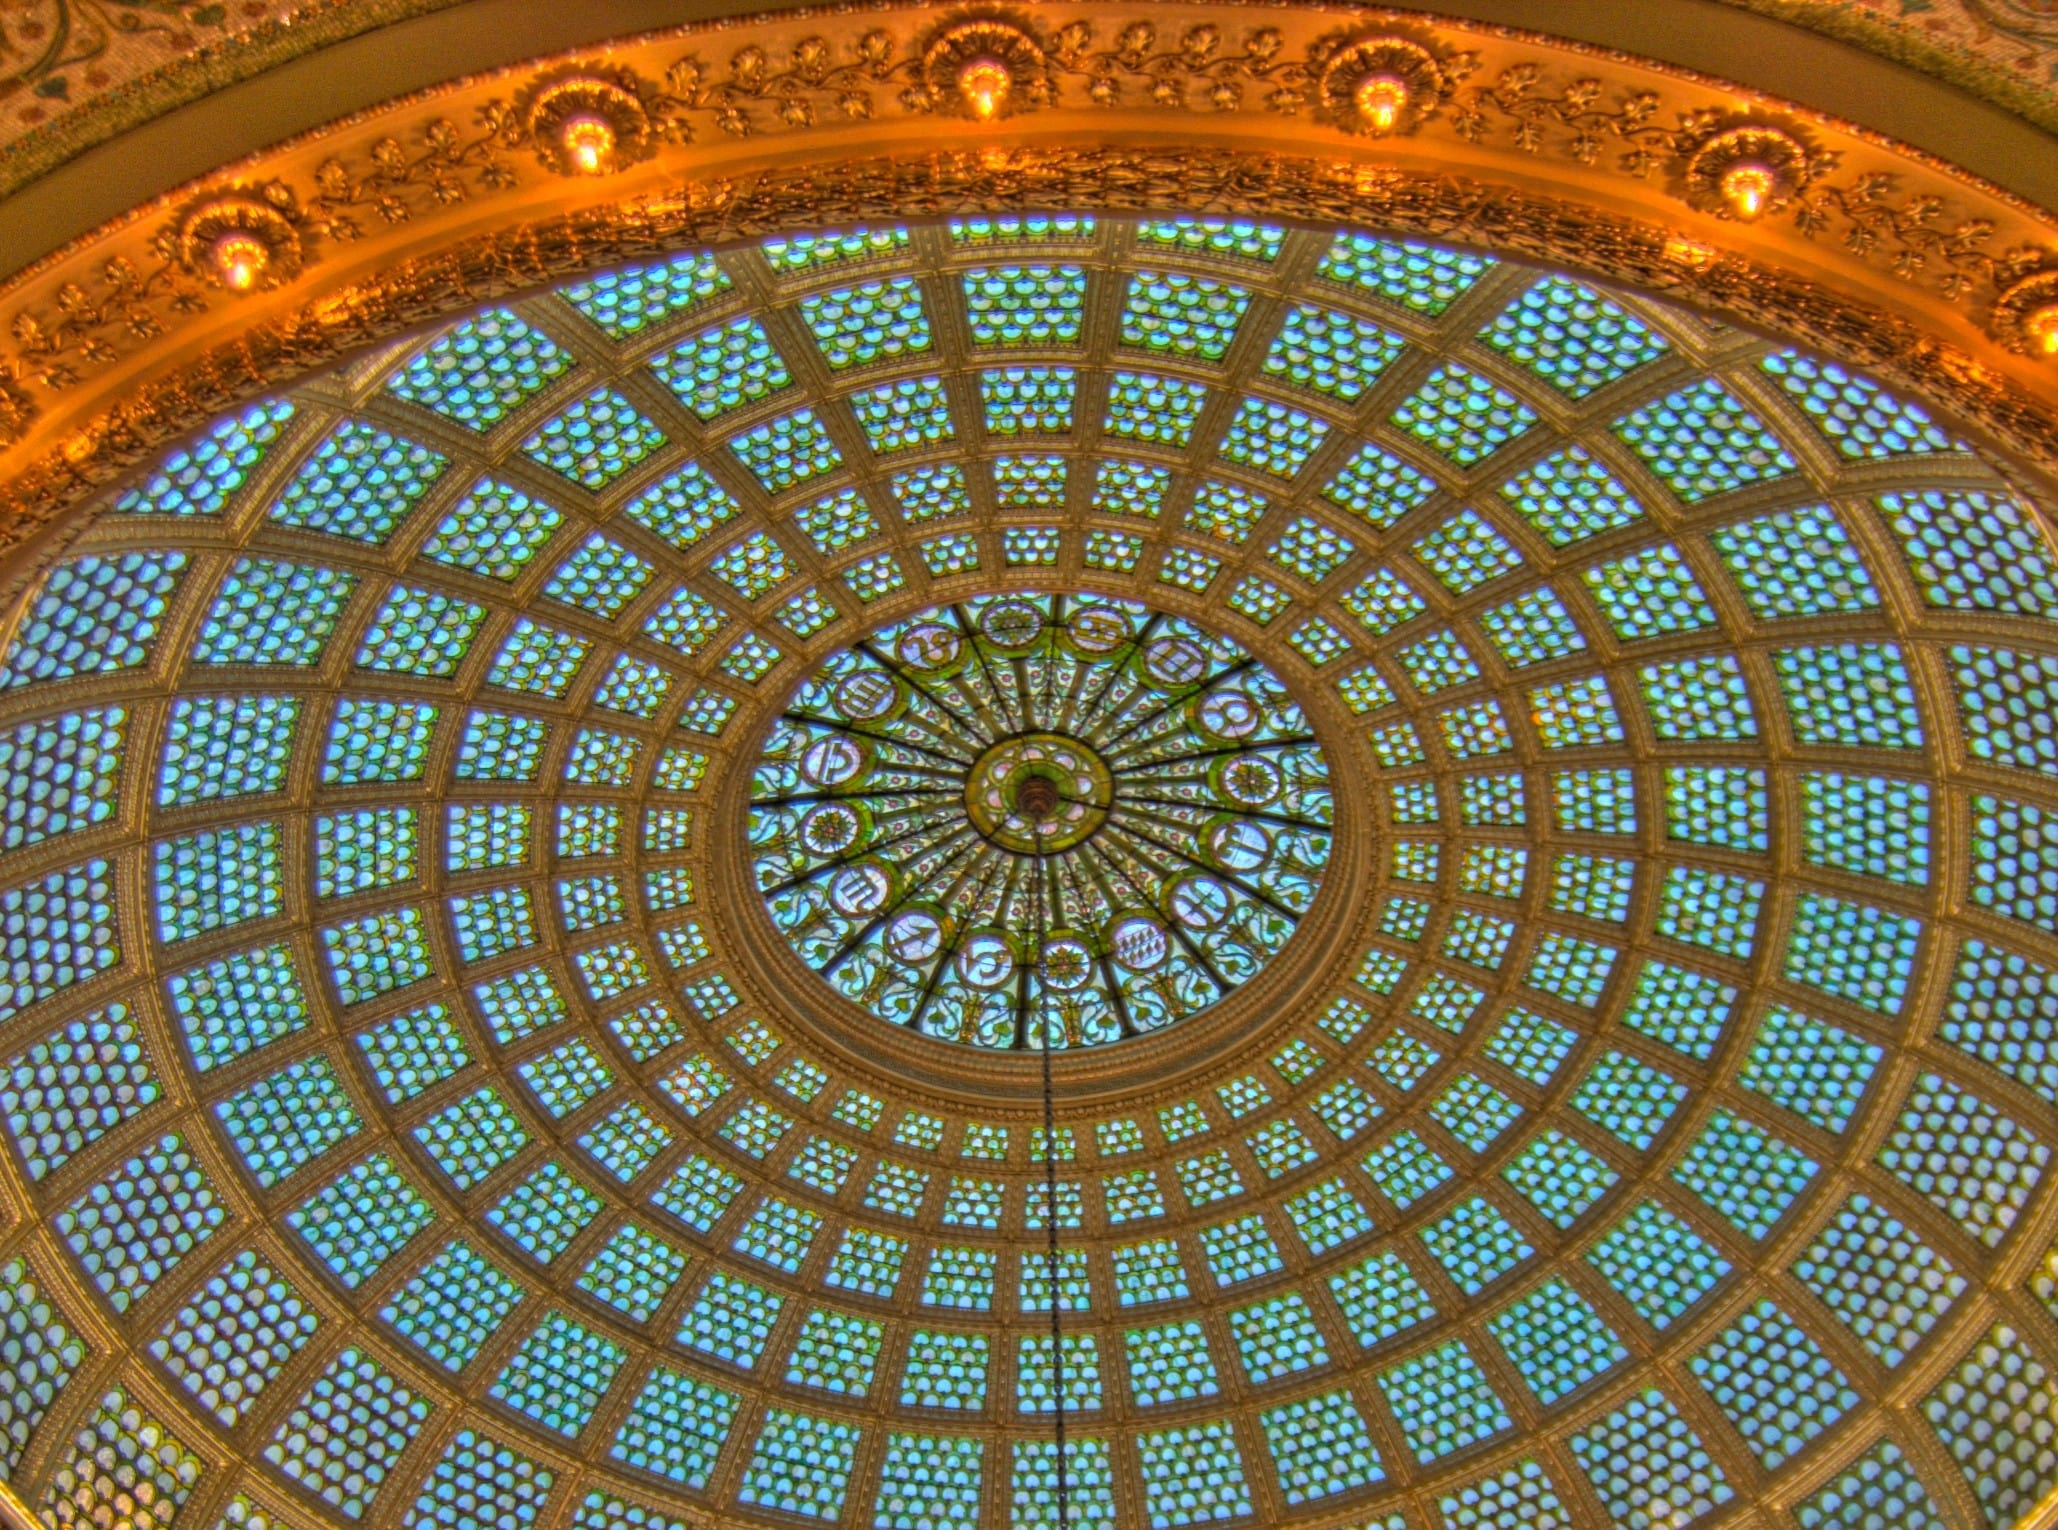 Chicago architecture zodiac cultural center tiffany dome